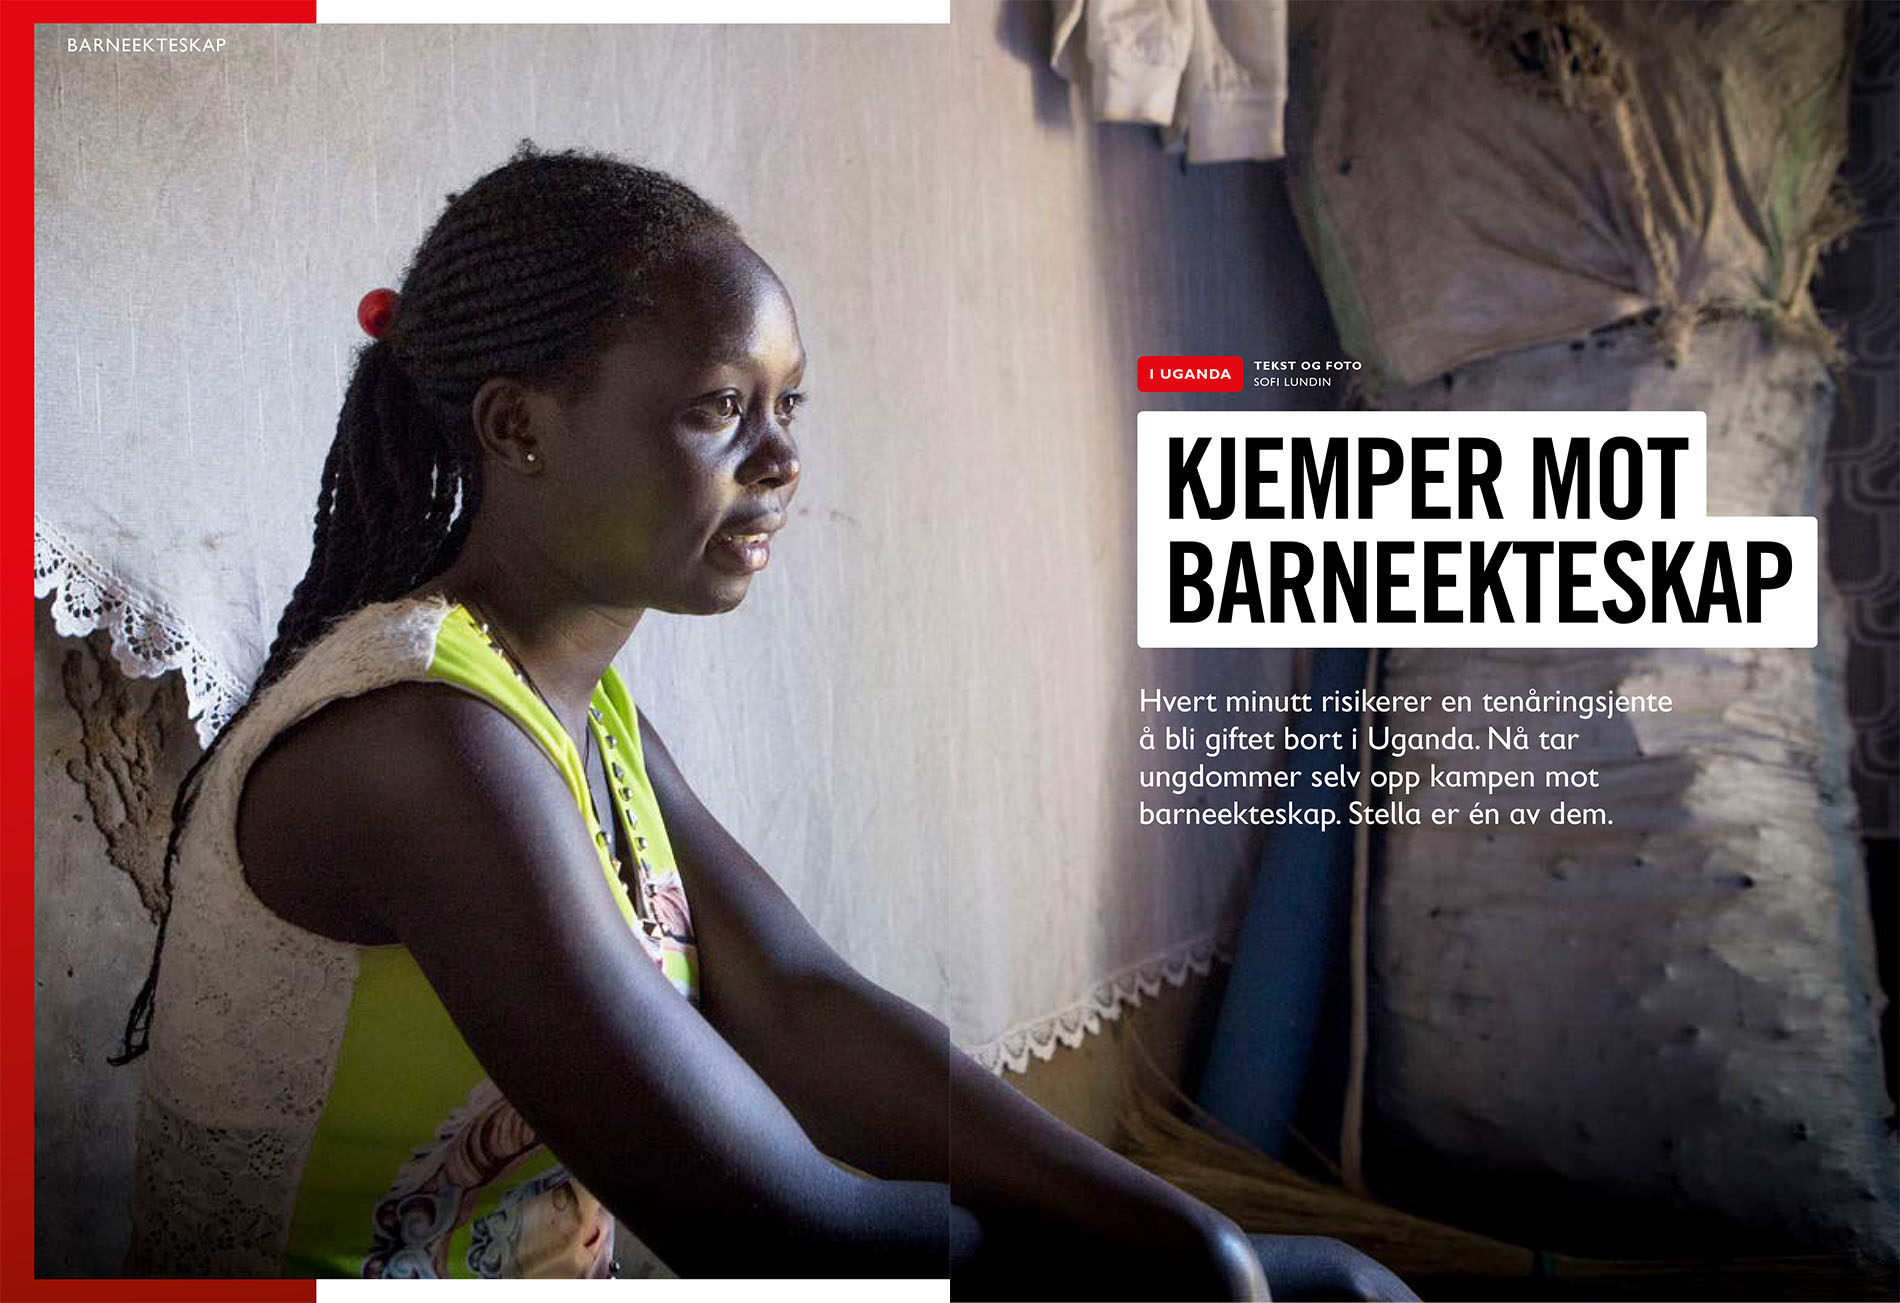 Child marriage in Northern Uganda